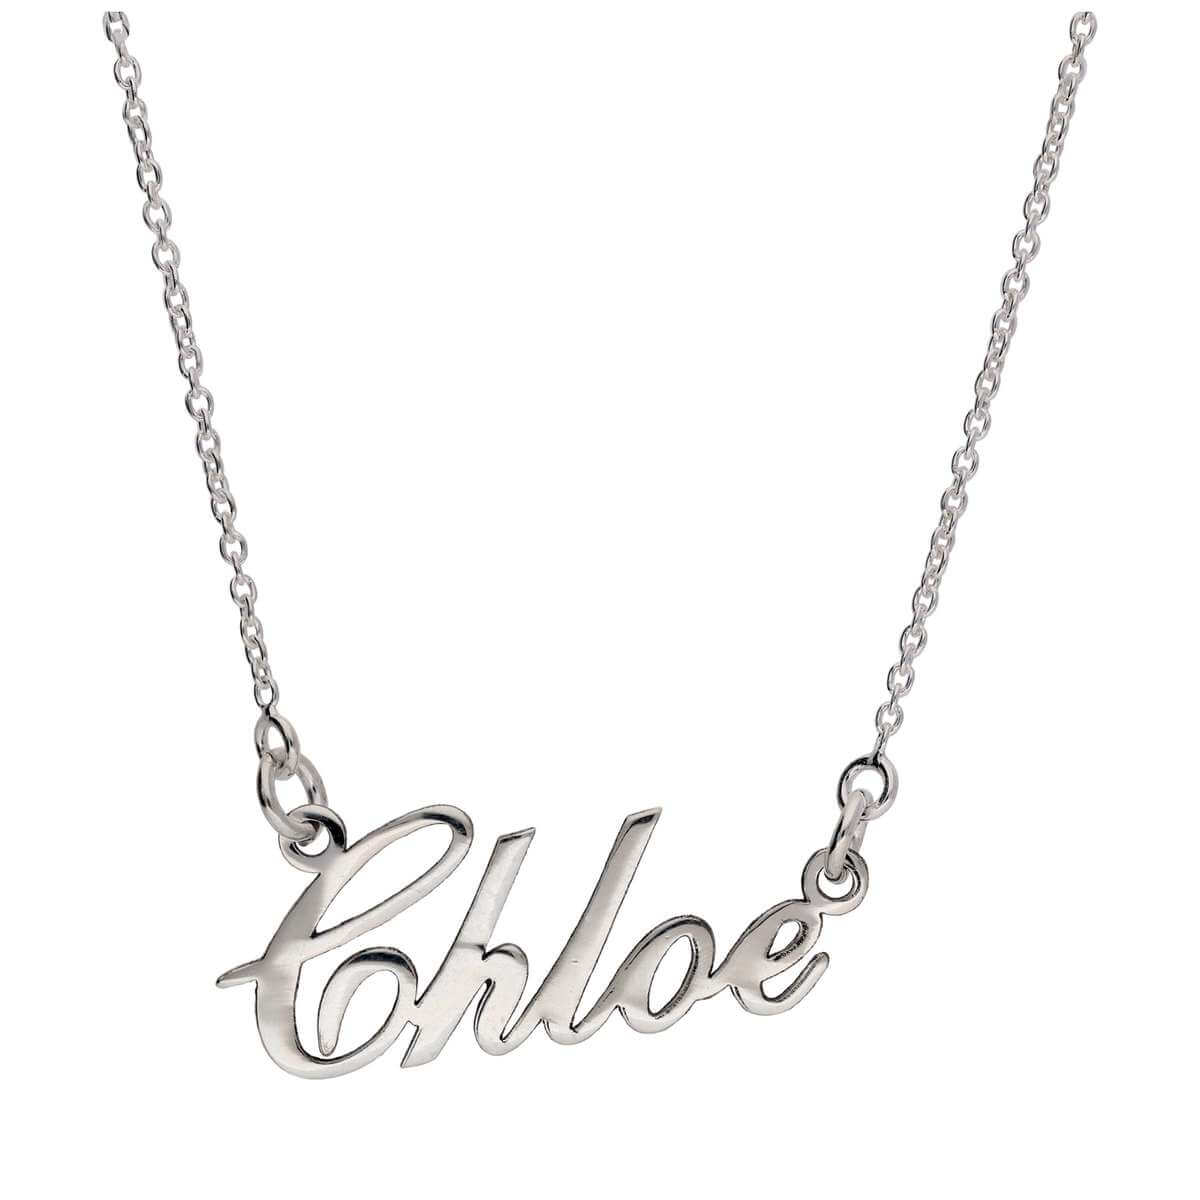 Bespoke Sterling Silver Personalised Name Script Necklace 17+1 Inch